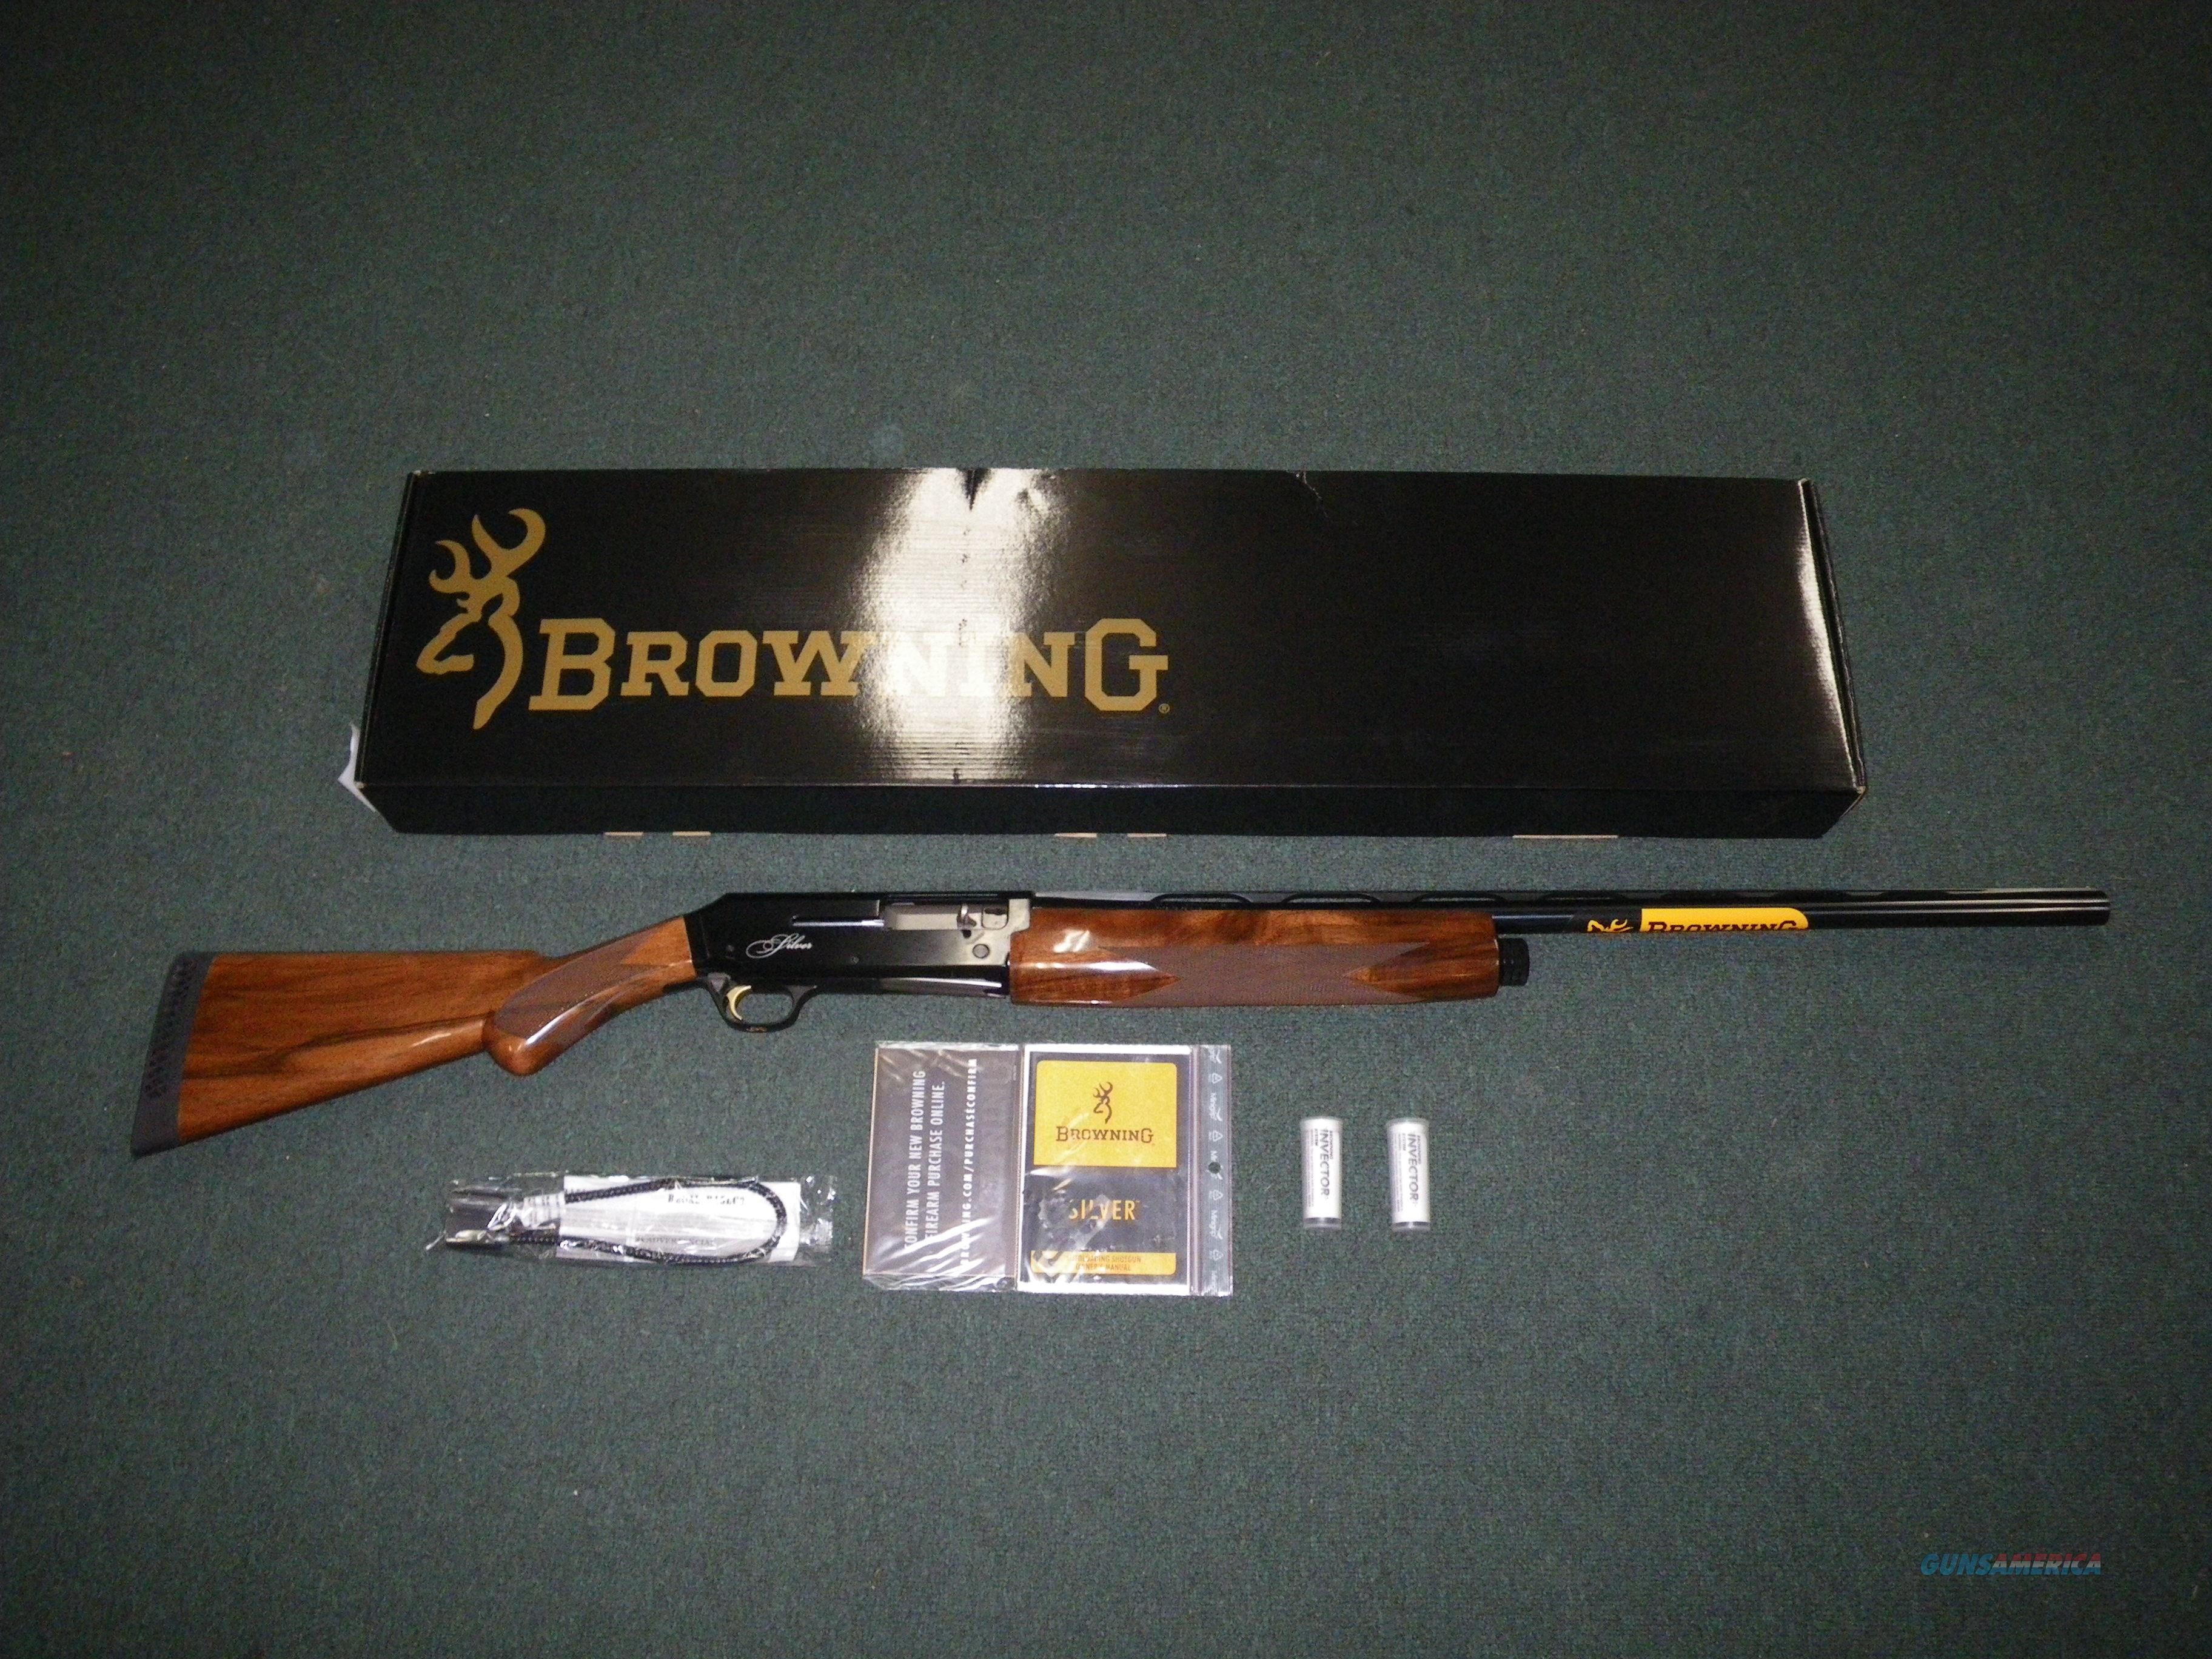 "Browning Silver Black Lightning 12ga 26"" NEW 3"" 011415305  Guns > Shotguns > Browning Shotguns > Autoloaders > Hunting"